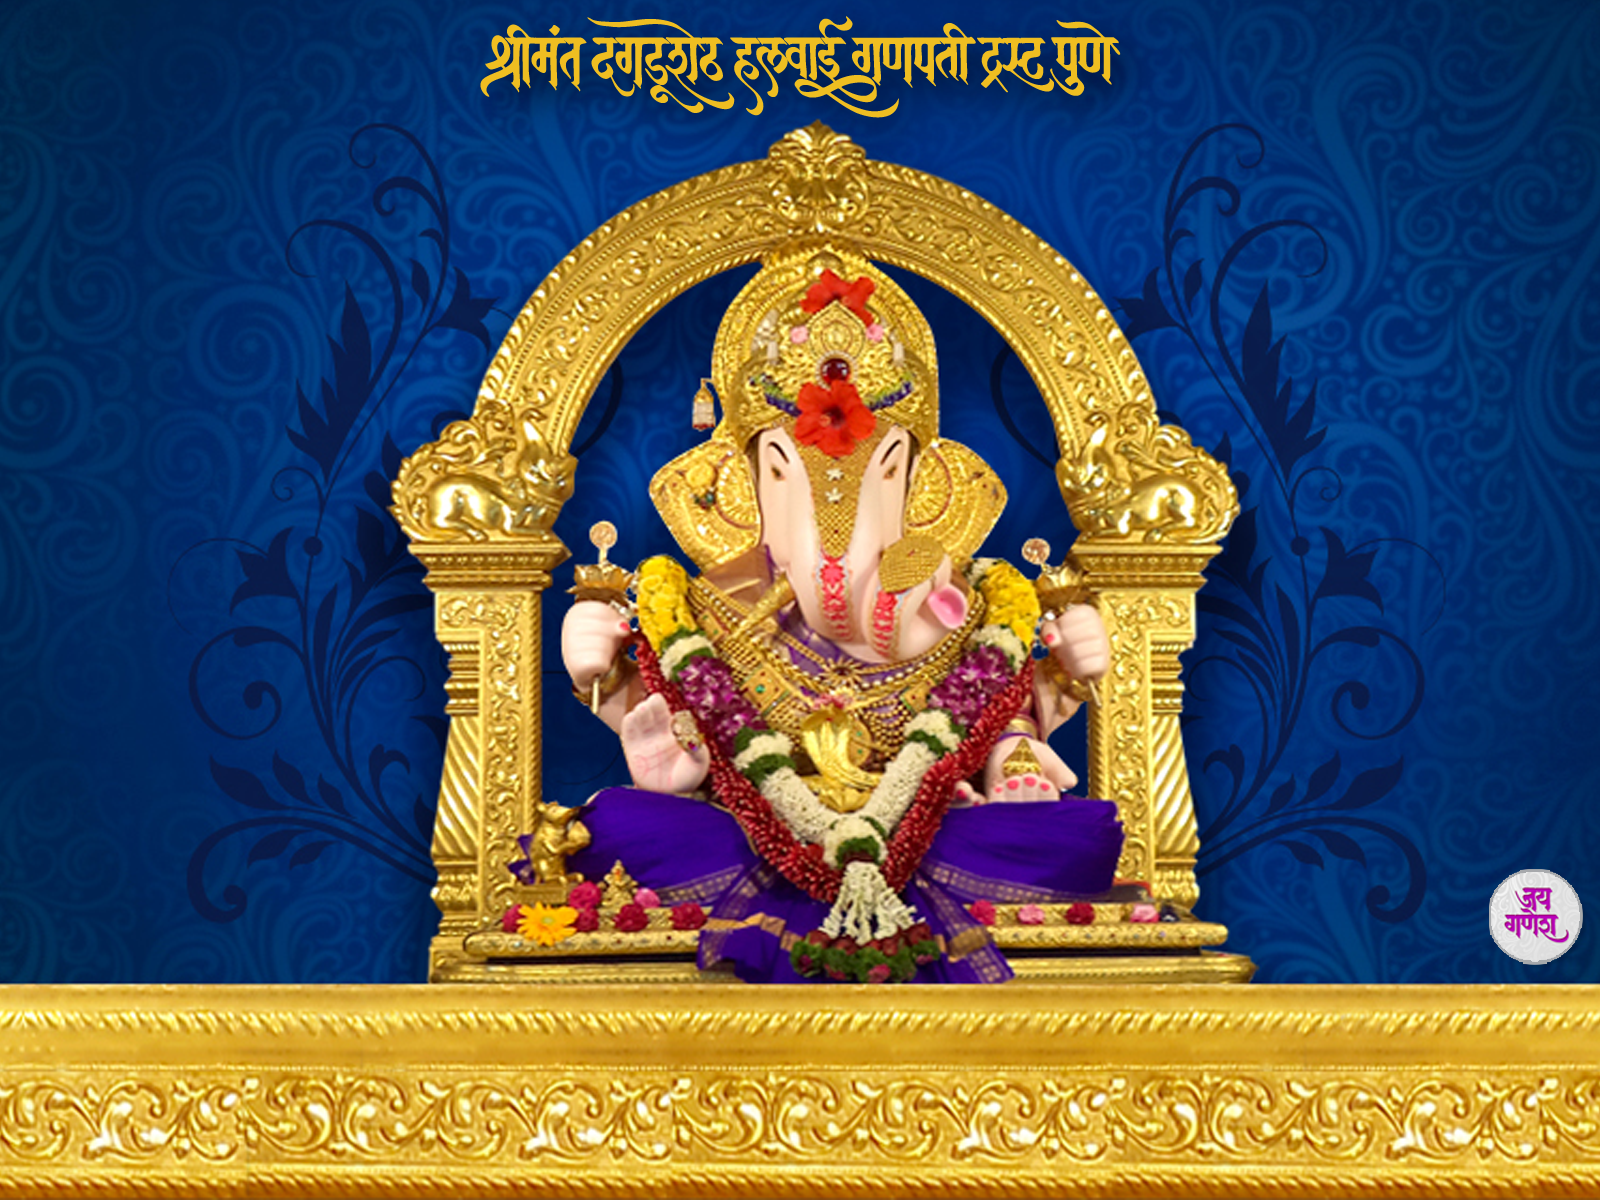 Dagdusheth-Ganpati-Images-wallpaper-wp4001834-1